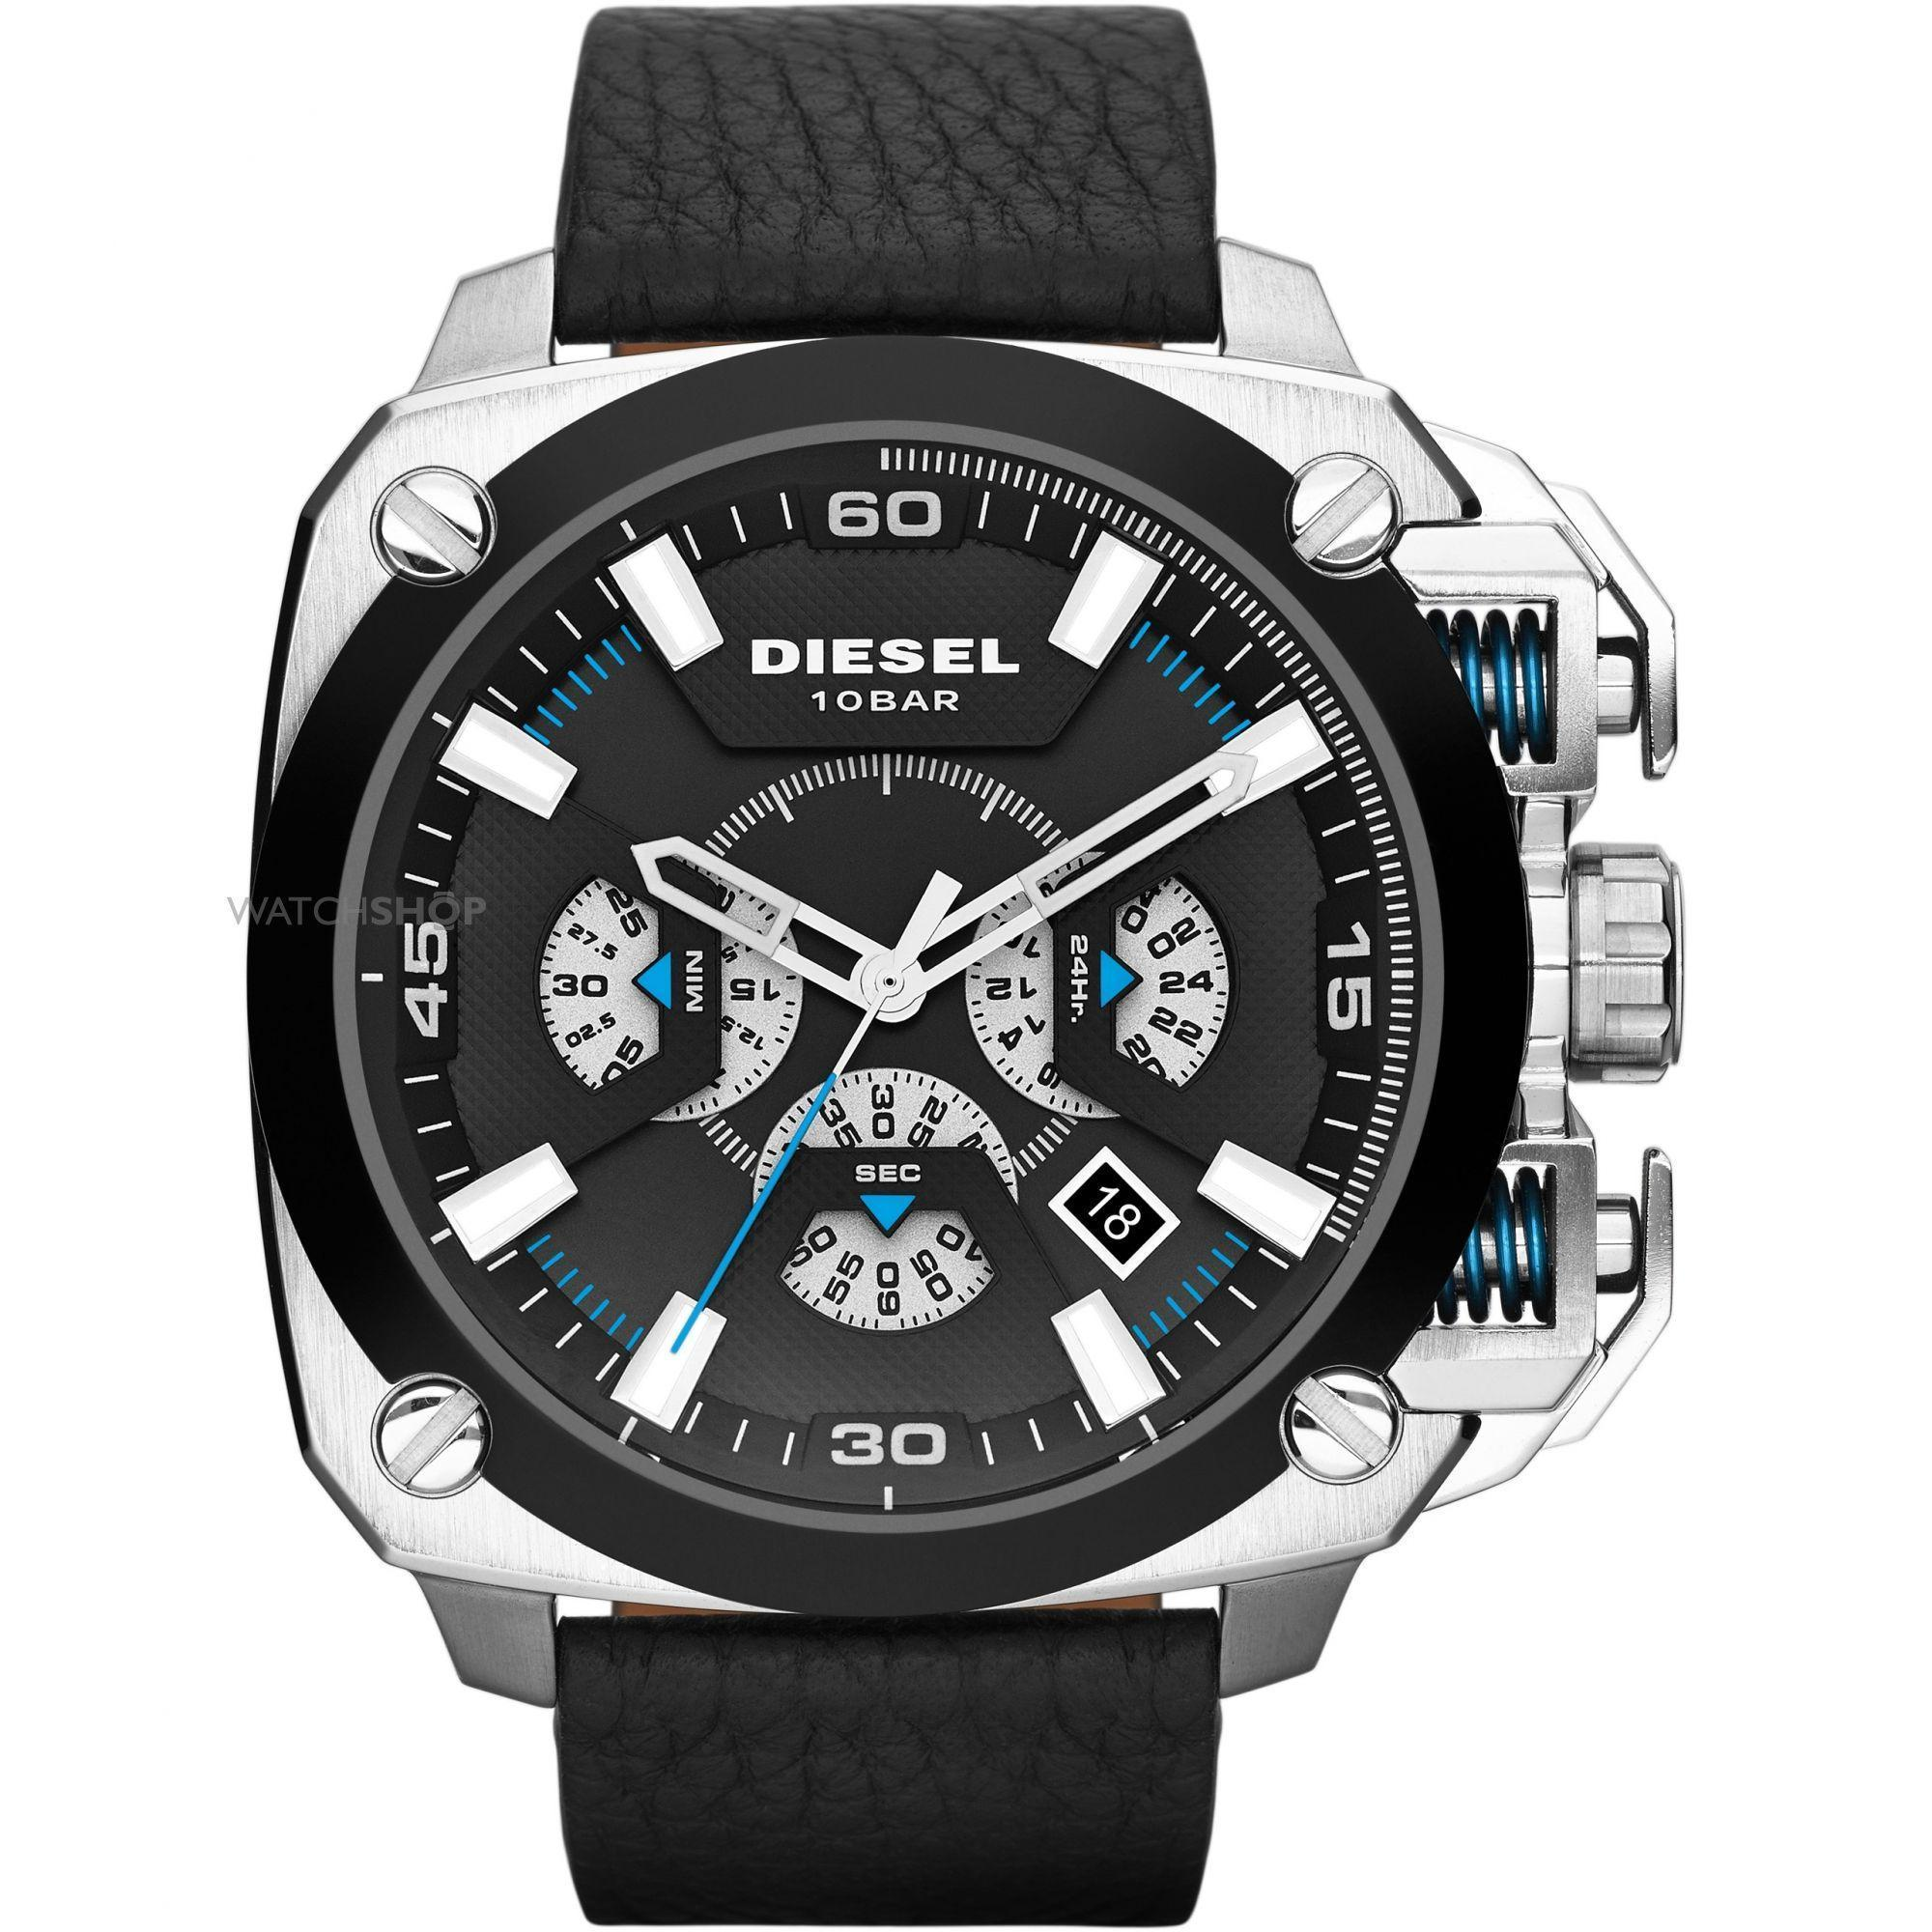 จันทบุรี Diesel_BAMF Men 57.5mm Black Dial Black Leather Strap Chronograph Quartz Watch DZ7345